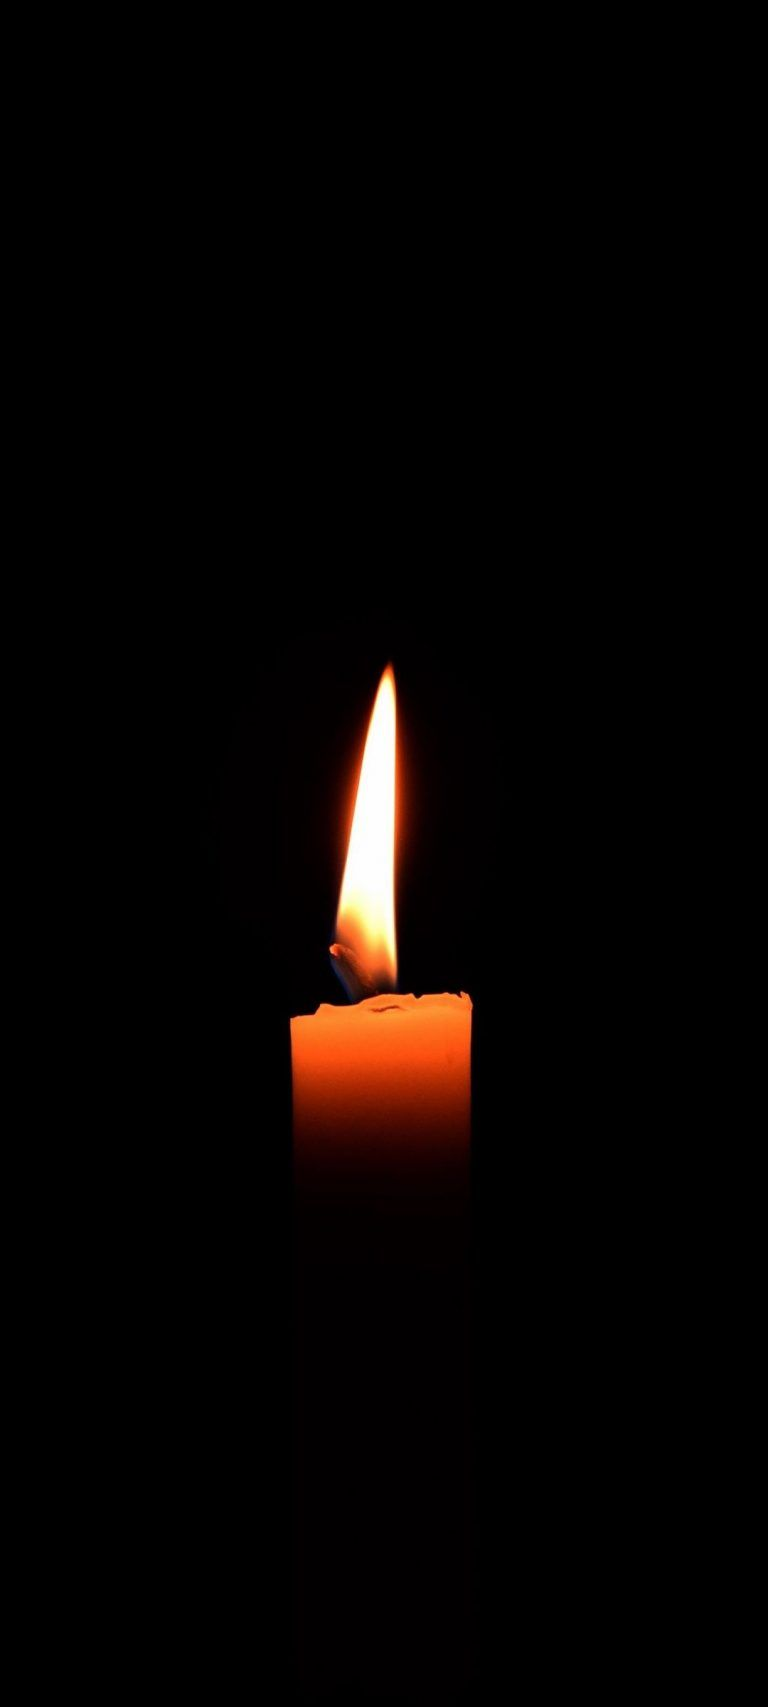 Amoled Candle Phone Wallpaper In 2021 Minimalist Candles Black Wallpaper Wallpaper